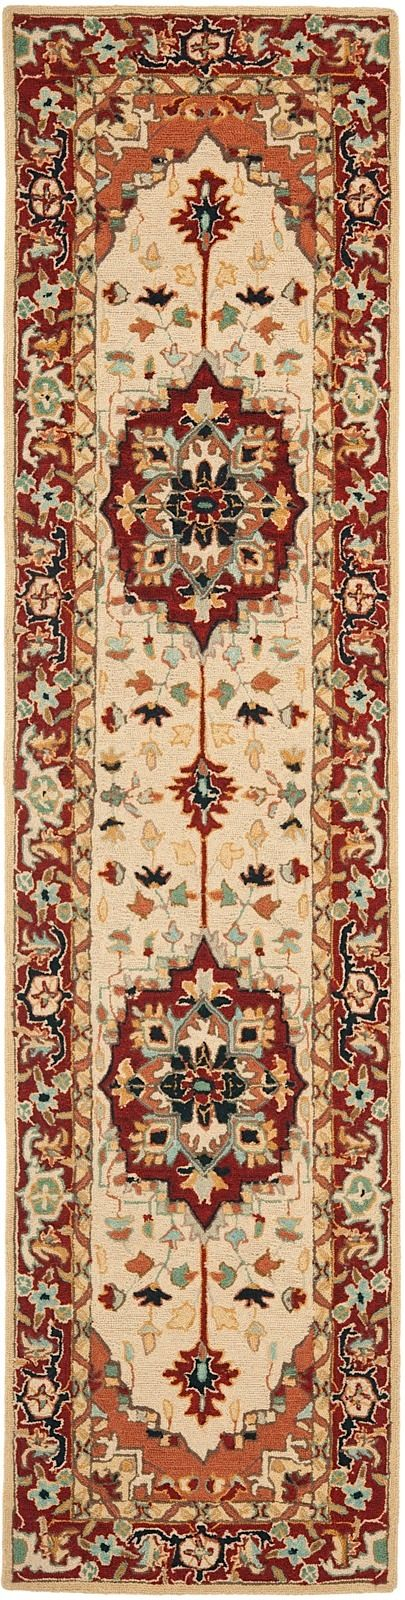 safavieh chelsea european area rug collection